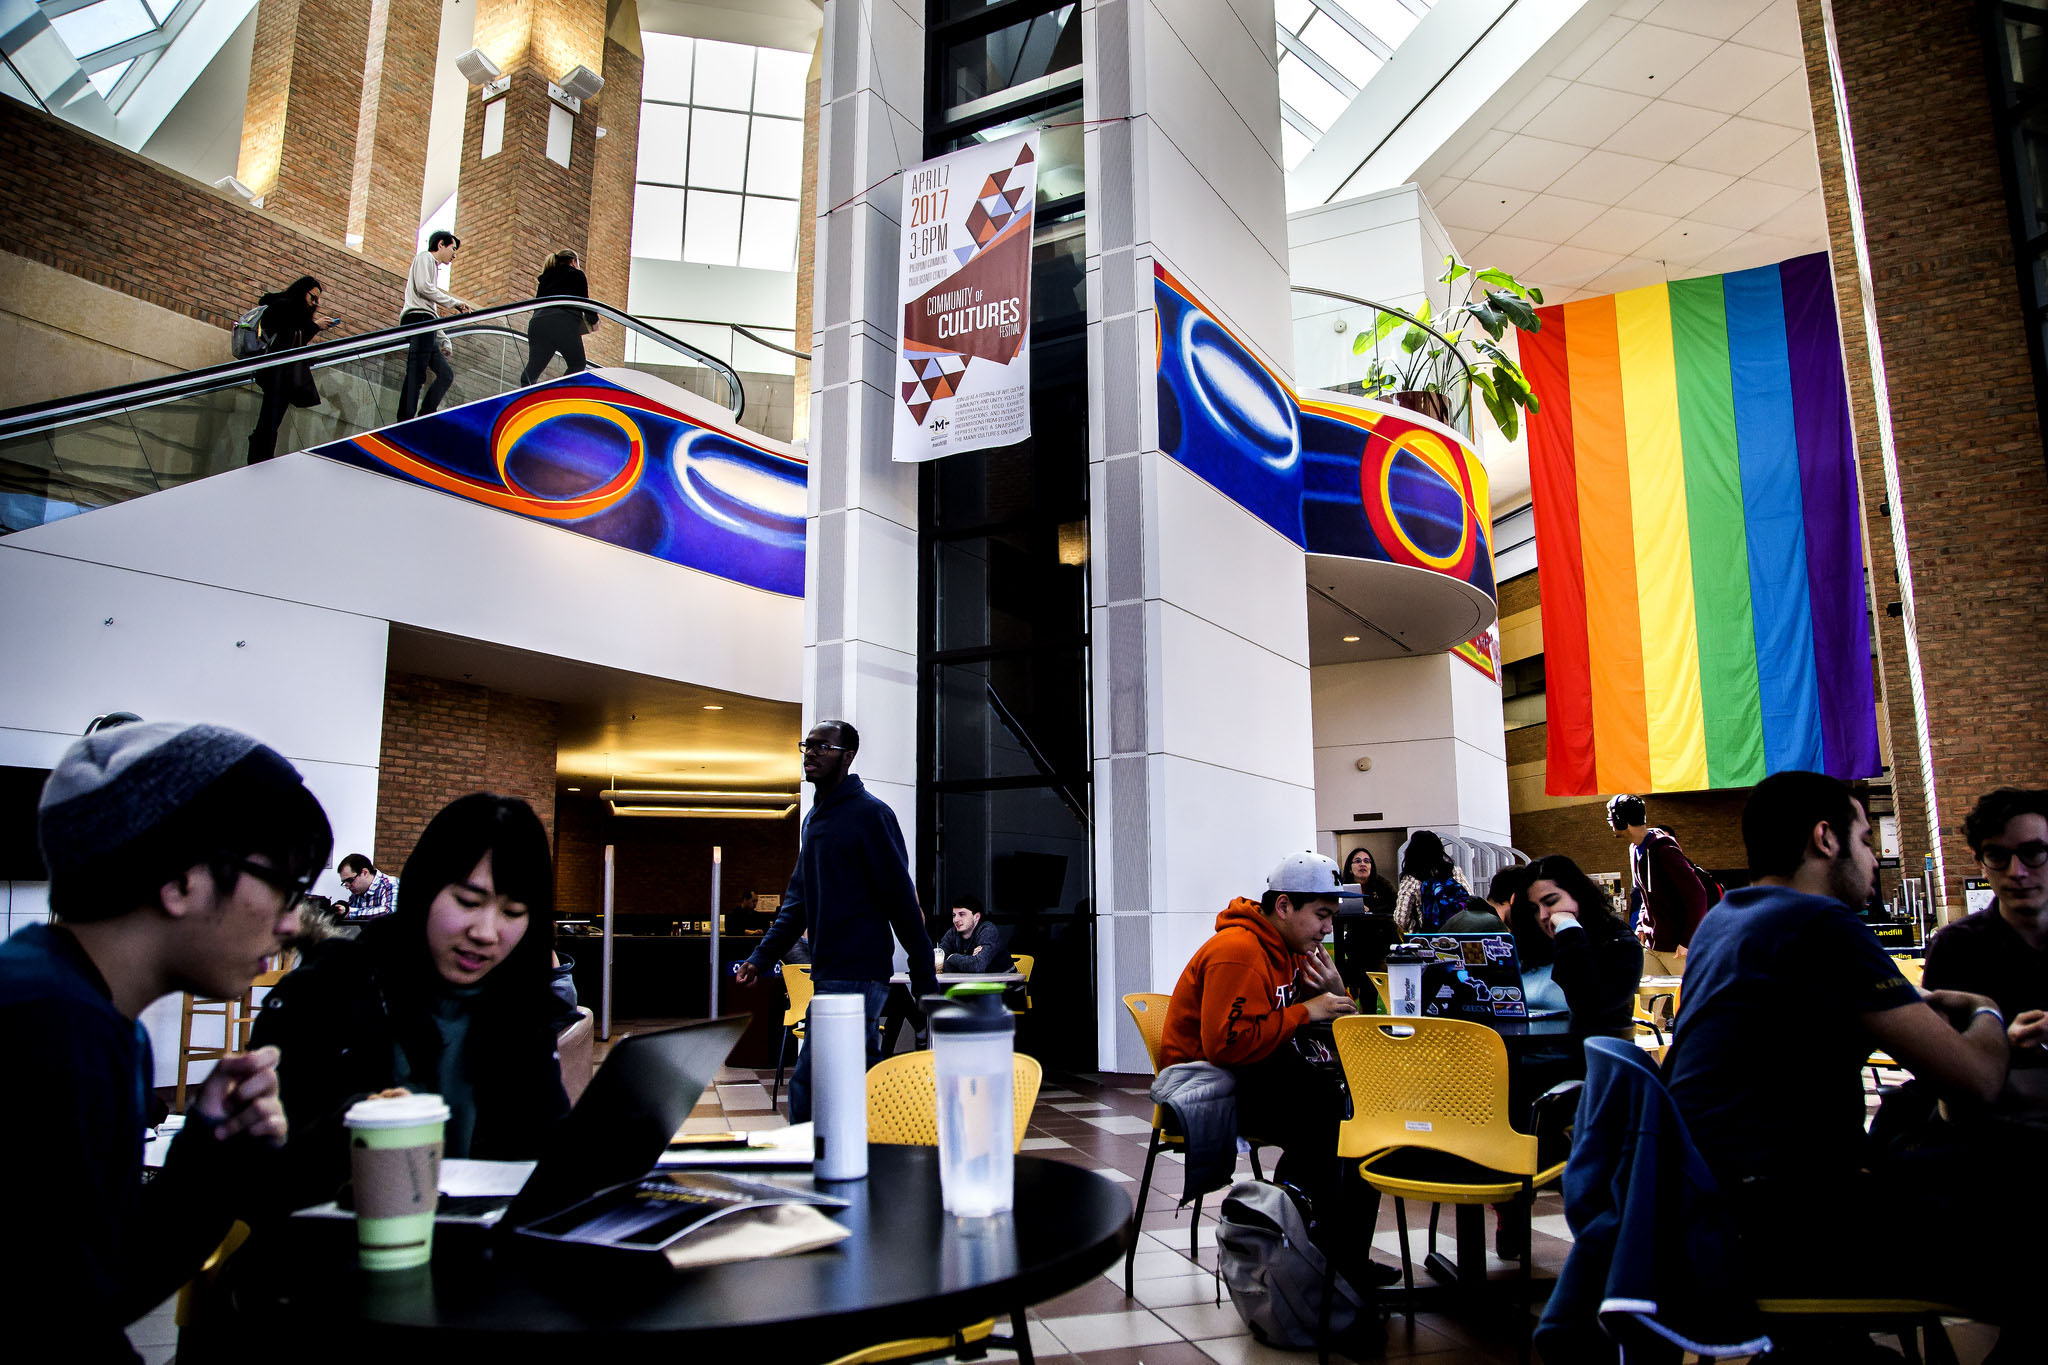 A photograph of a pride flag hanging in the Duderstadt Center on North Campus of the University of Michigan